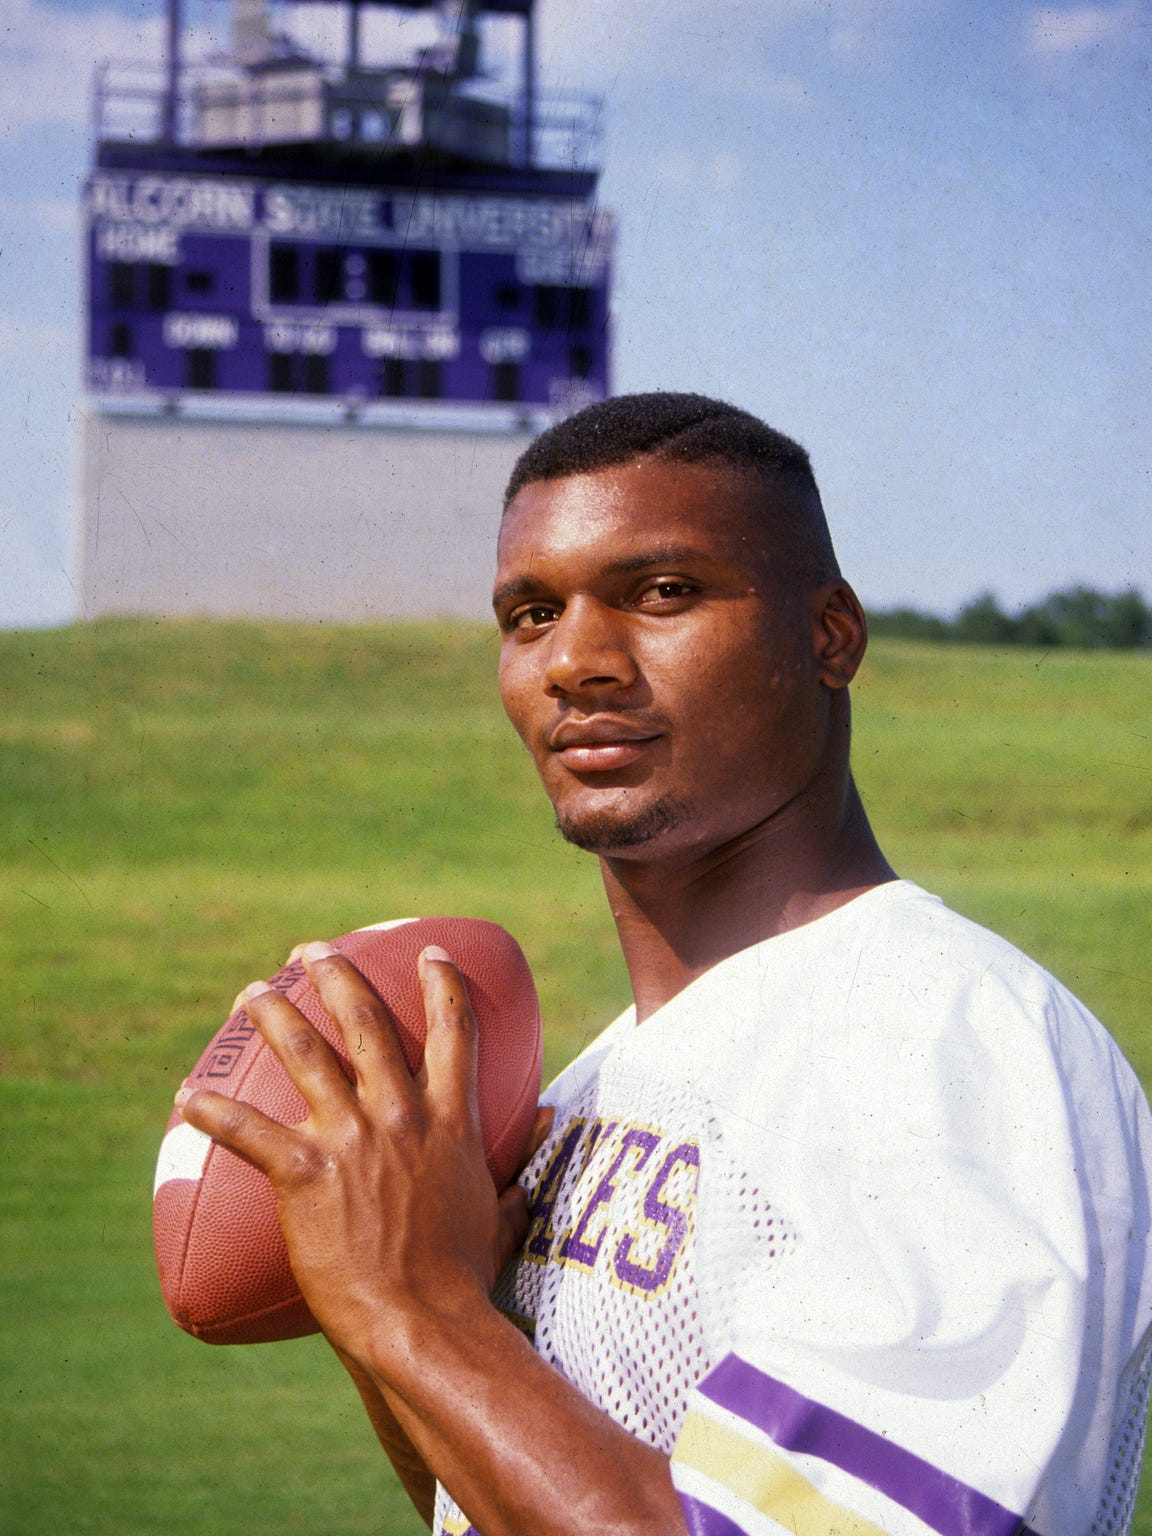 Major colleges thought Steve McNair was a defensive back, but he went to Alcorn State and became a sensation. He set records and was third in the Heisman Trophy voting.